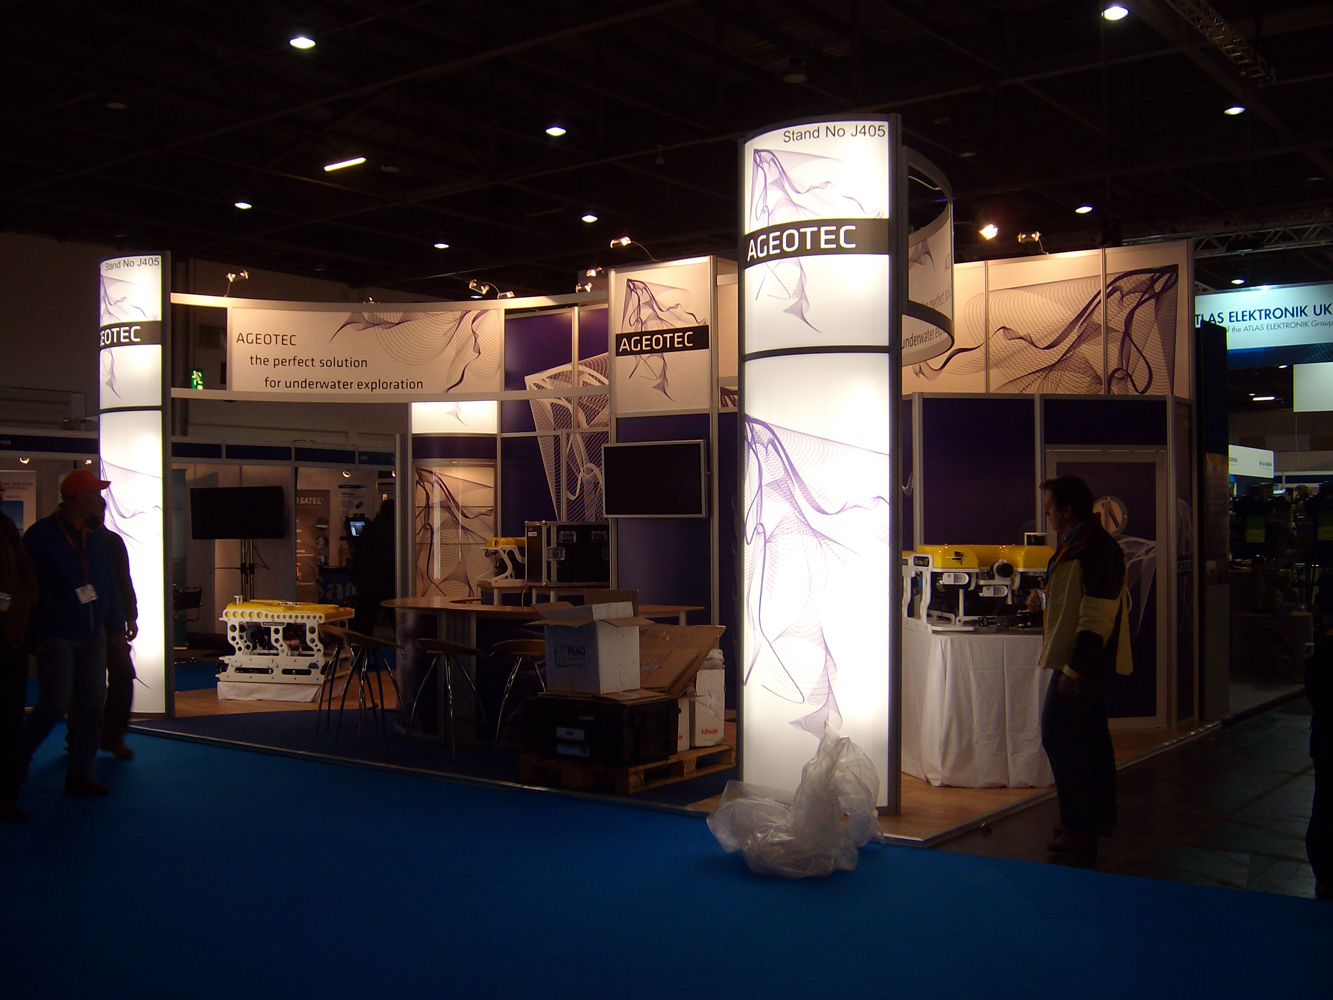 Modular Exhibition Stands Job : Modular exhibition stands tms exhibitions & events